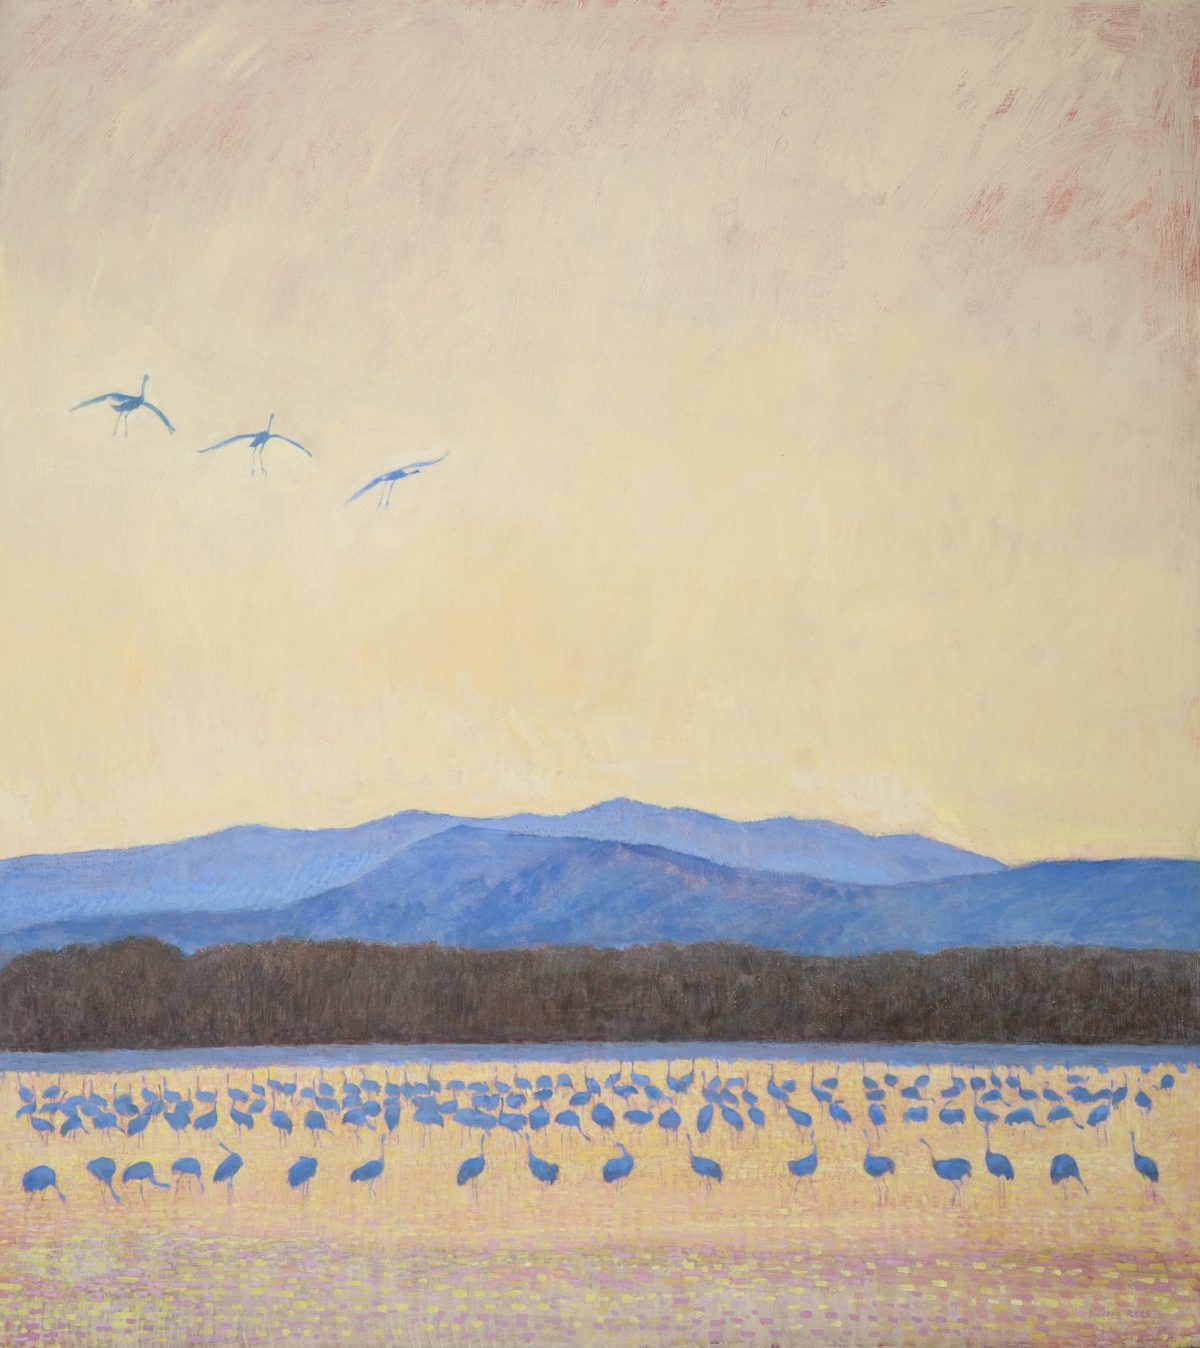 Painting by Darren Rees titled Cranes, Bosque del Apache